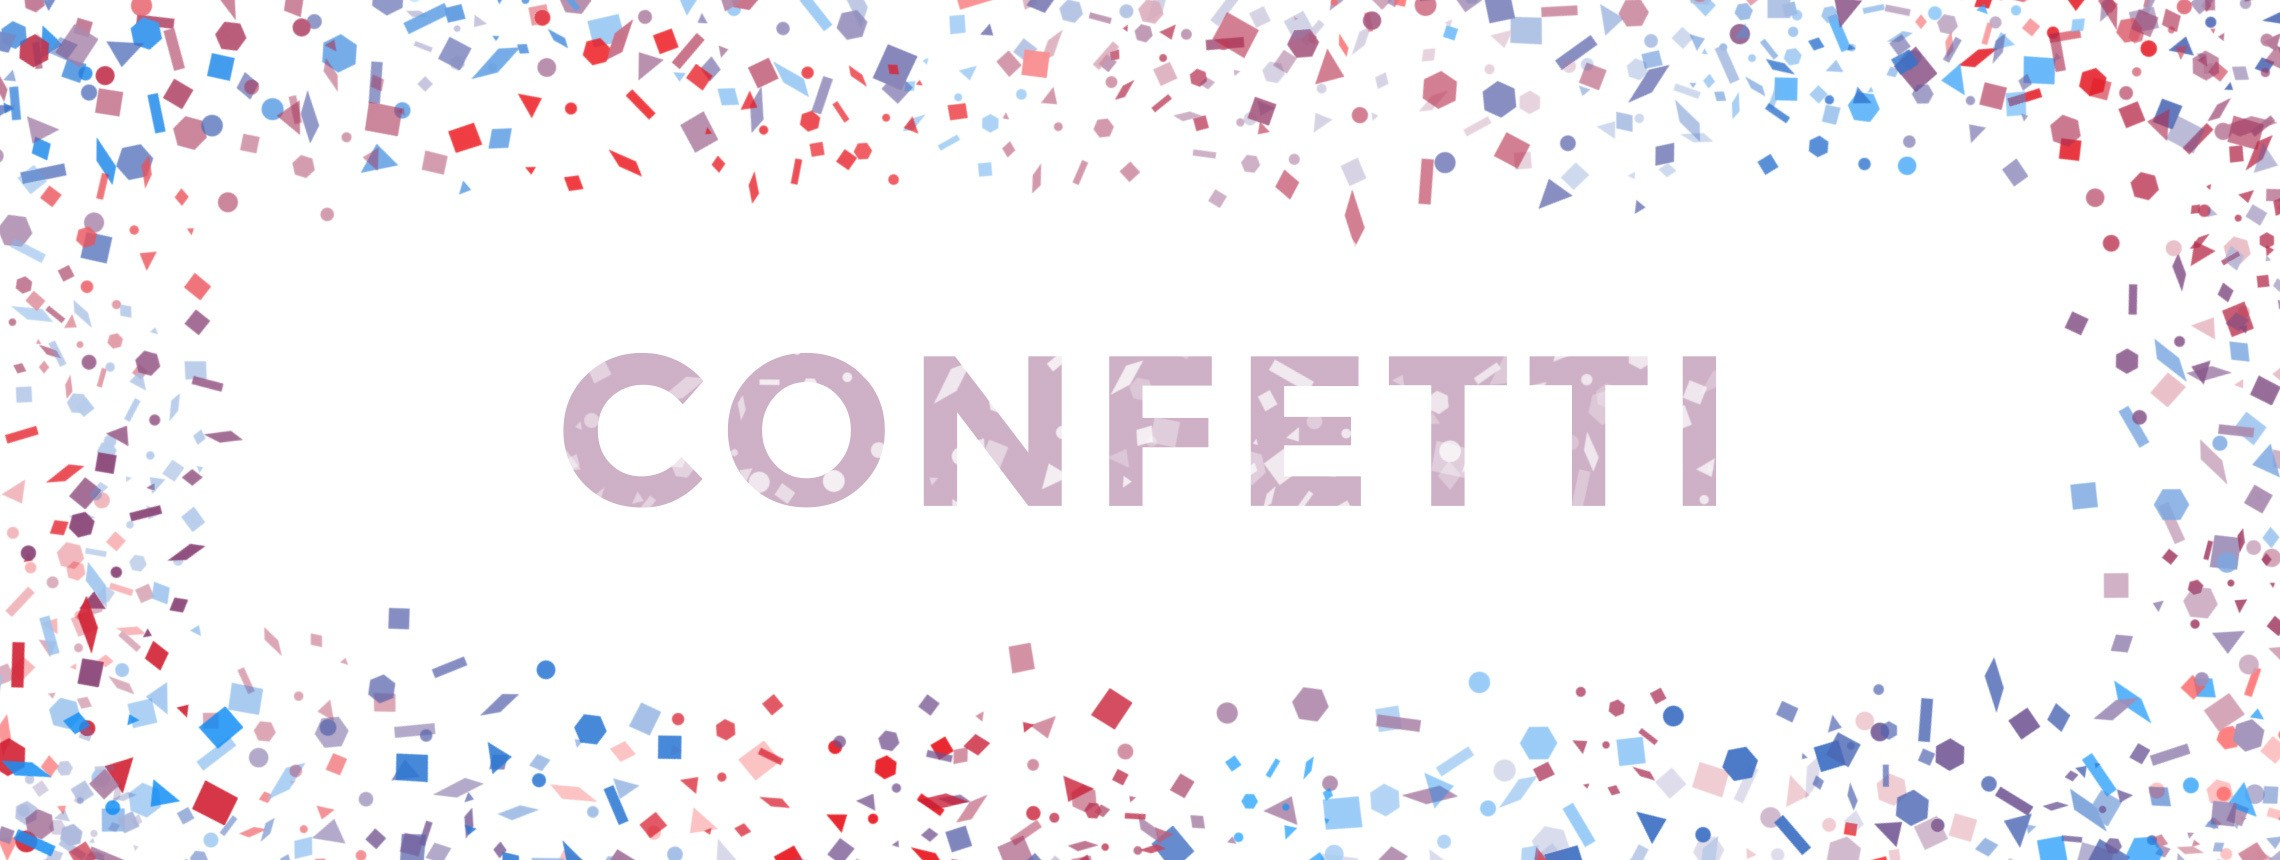 How To Make A Confetti Brush In Photoshop Medialoot